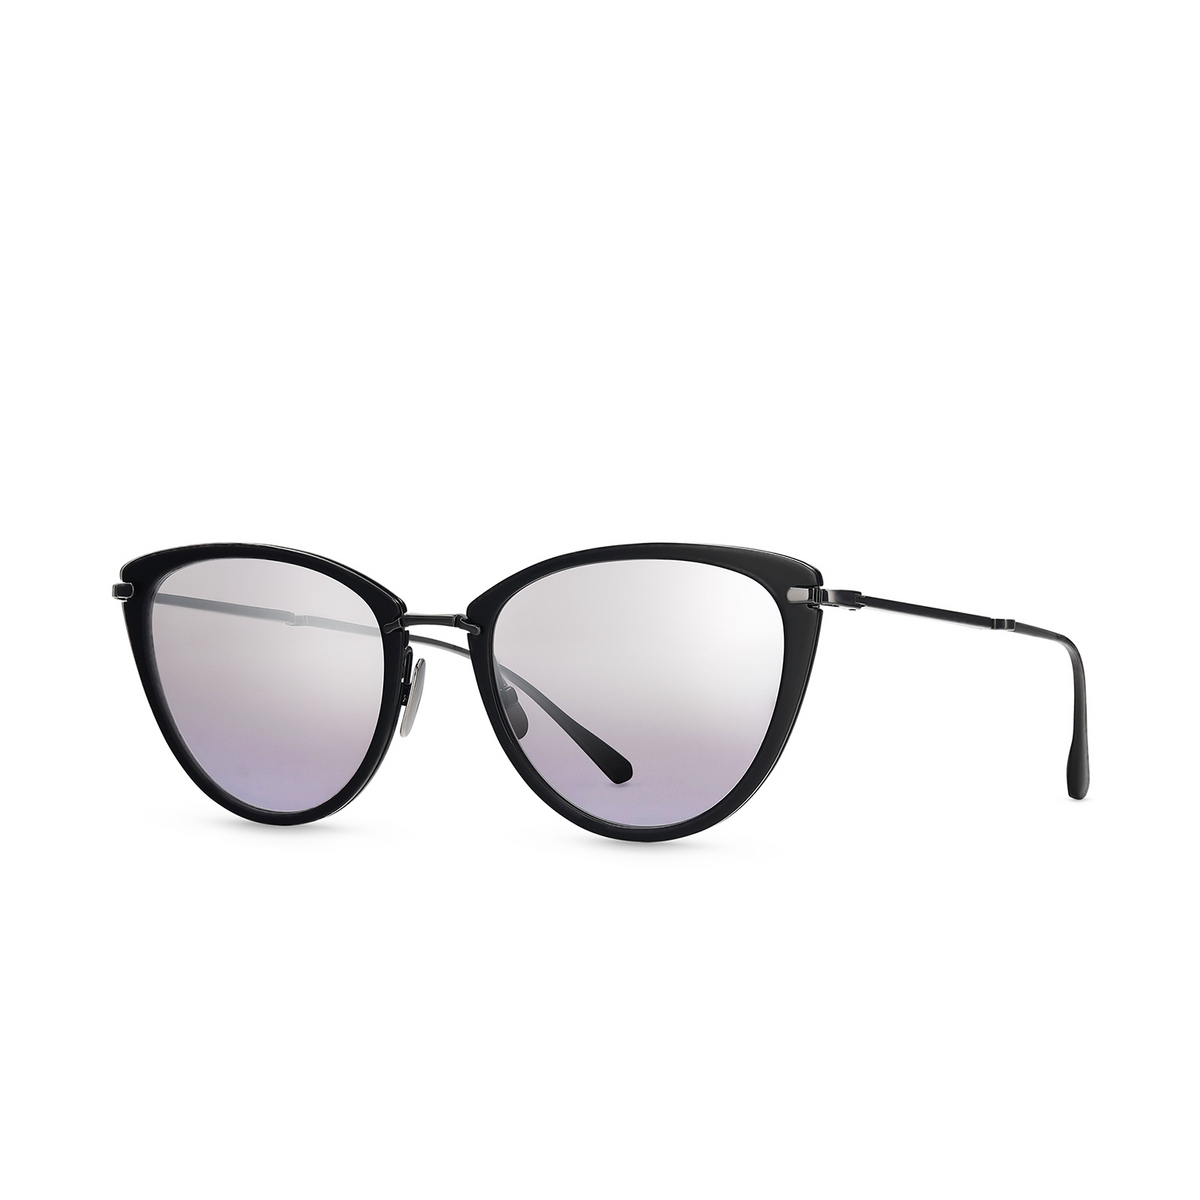 Mr. Leight® Butterfly Sunglasses: Beverly S color Bk-sbk/sf.